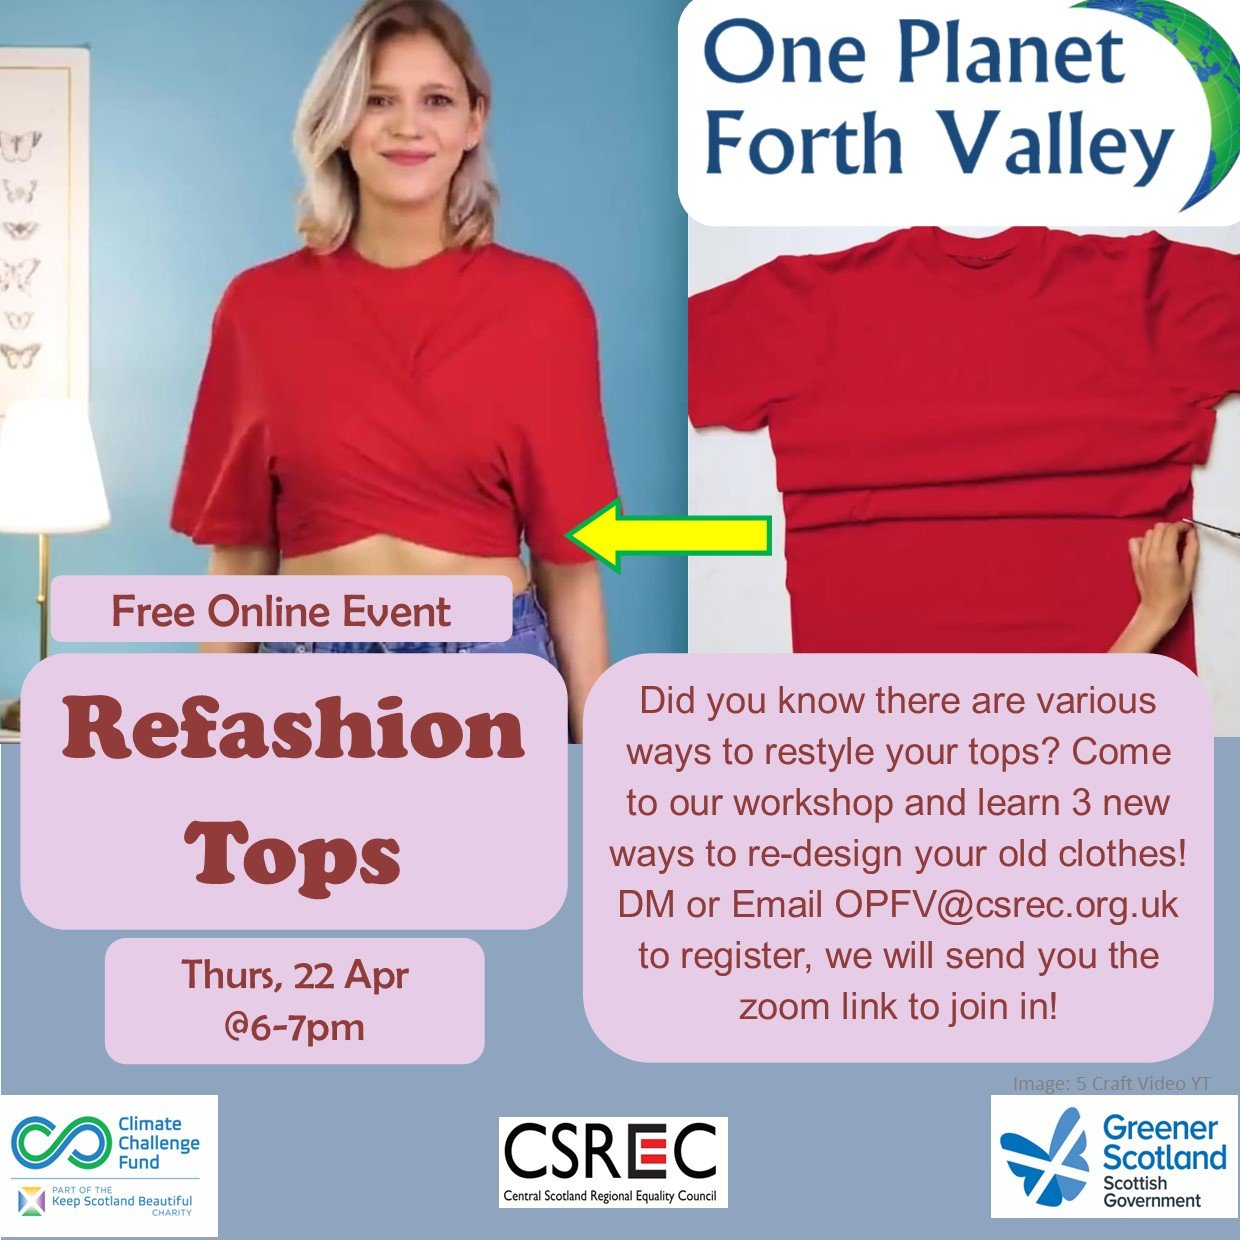 One Planet Forth Valley